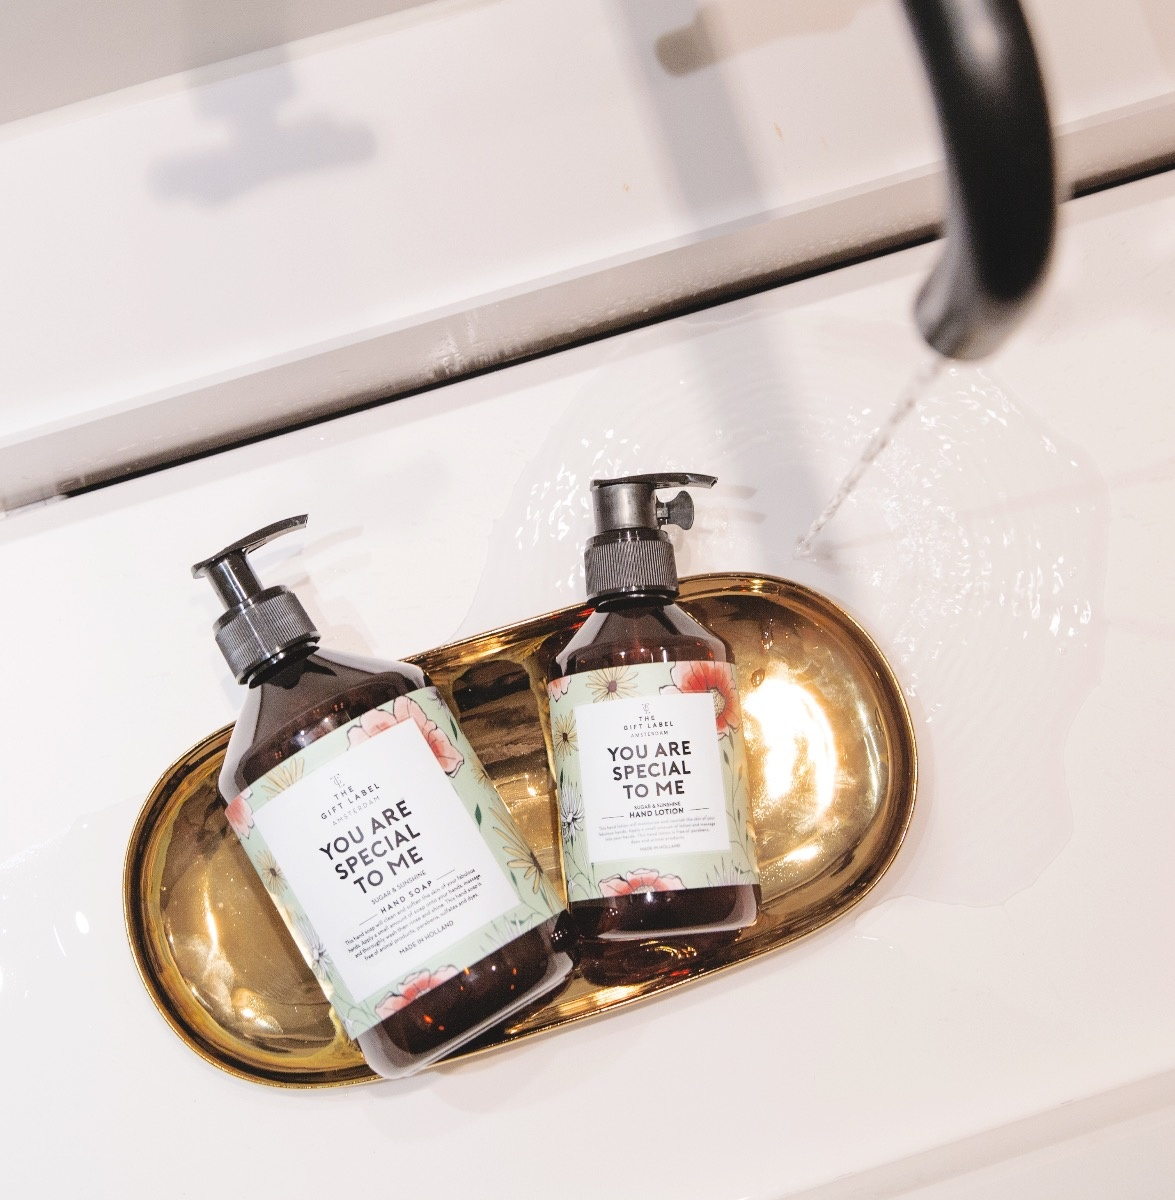 The Gift Label Hand soap You are Special to Me 500ml